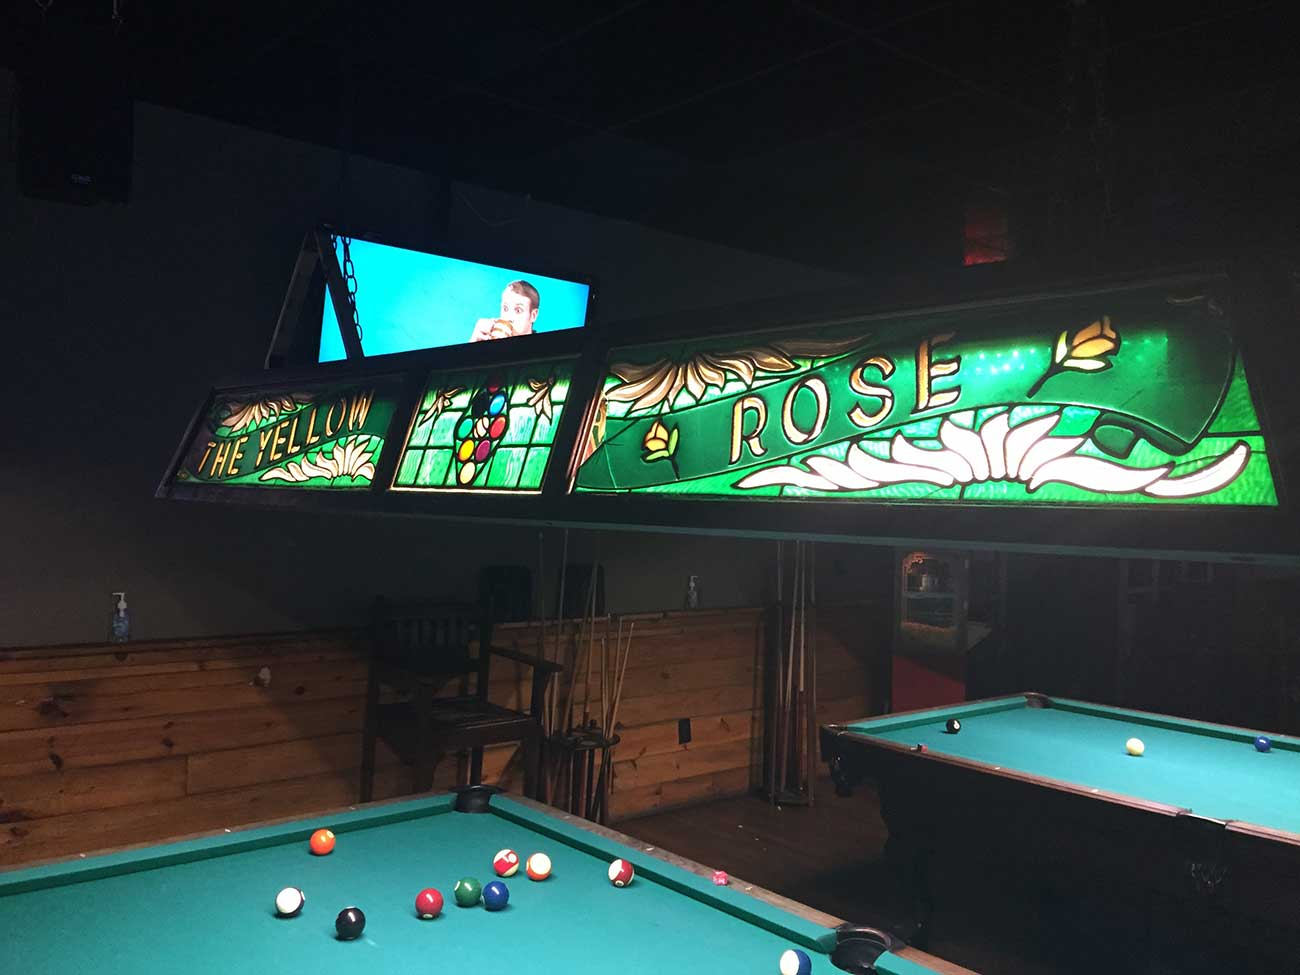 Goodbye, Yellow Rose. Beloved bar and pool hall will shut down this month